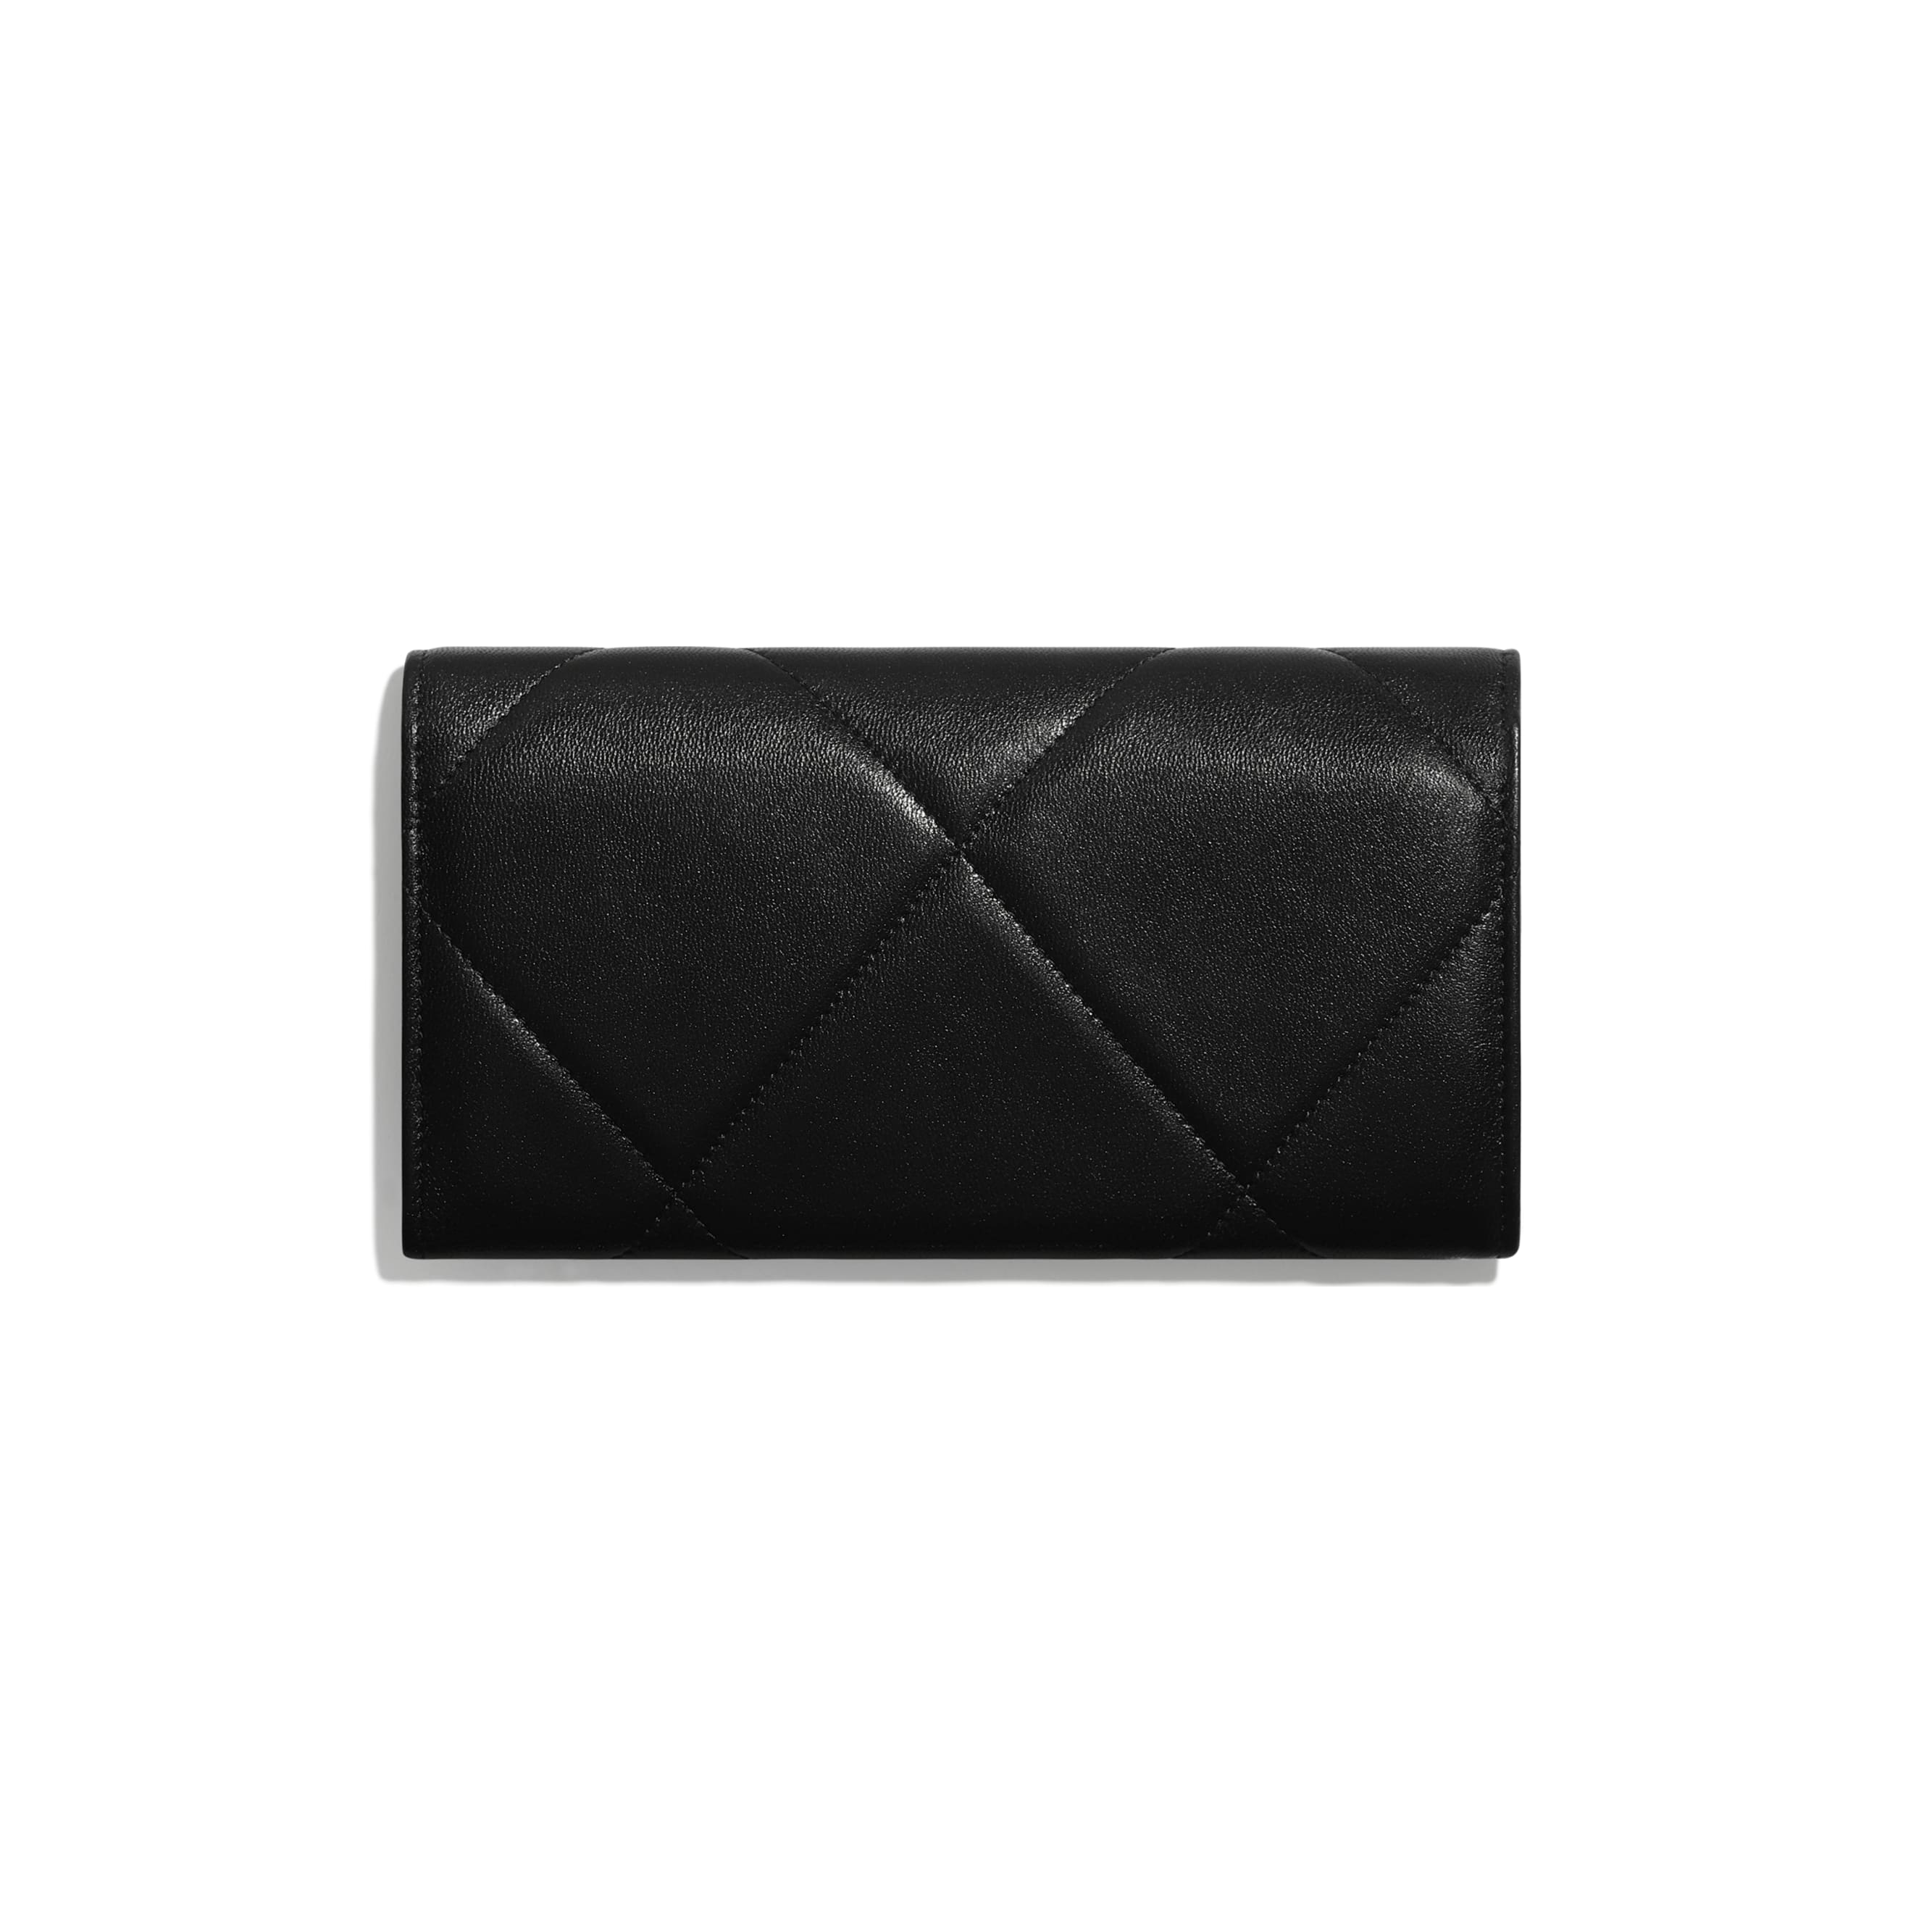 CHANEL 19 Long Flap Wallet - Black - Lambskin, Gold-Tone, Silver-Tone & Ruthenium-Finish Metal - Alternative view - see standard sized version